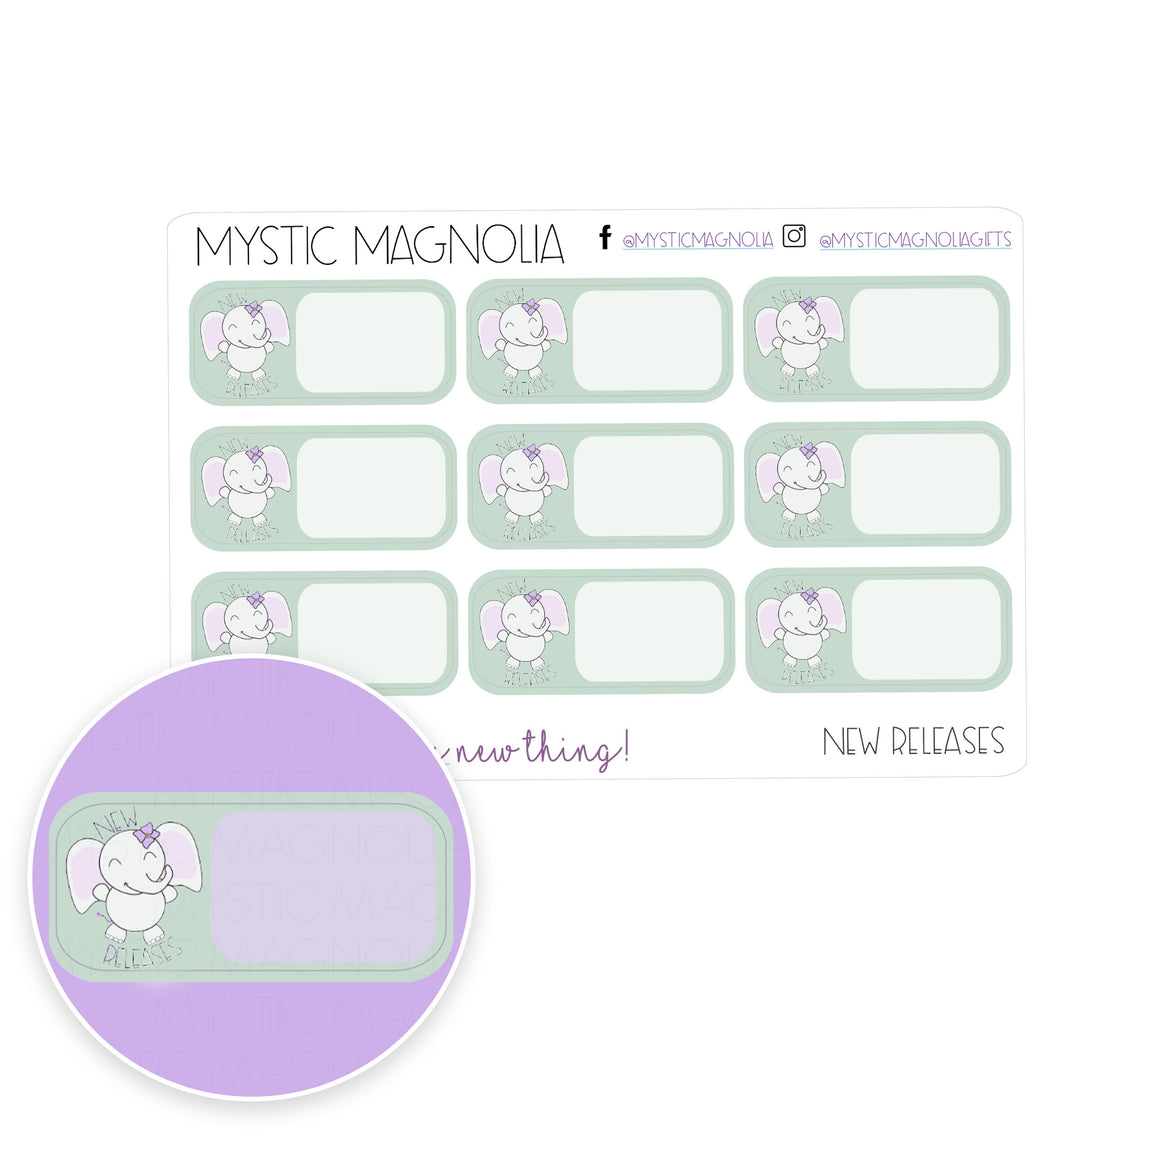 New Releases Planner Sticker Label